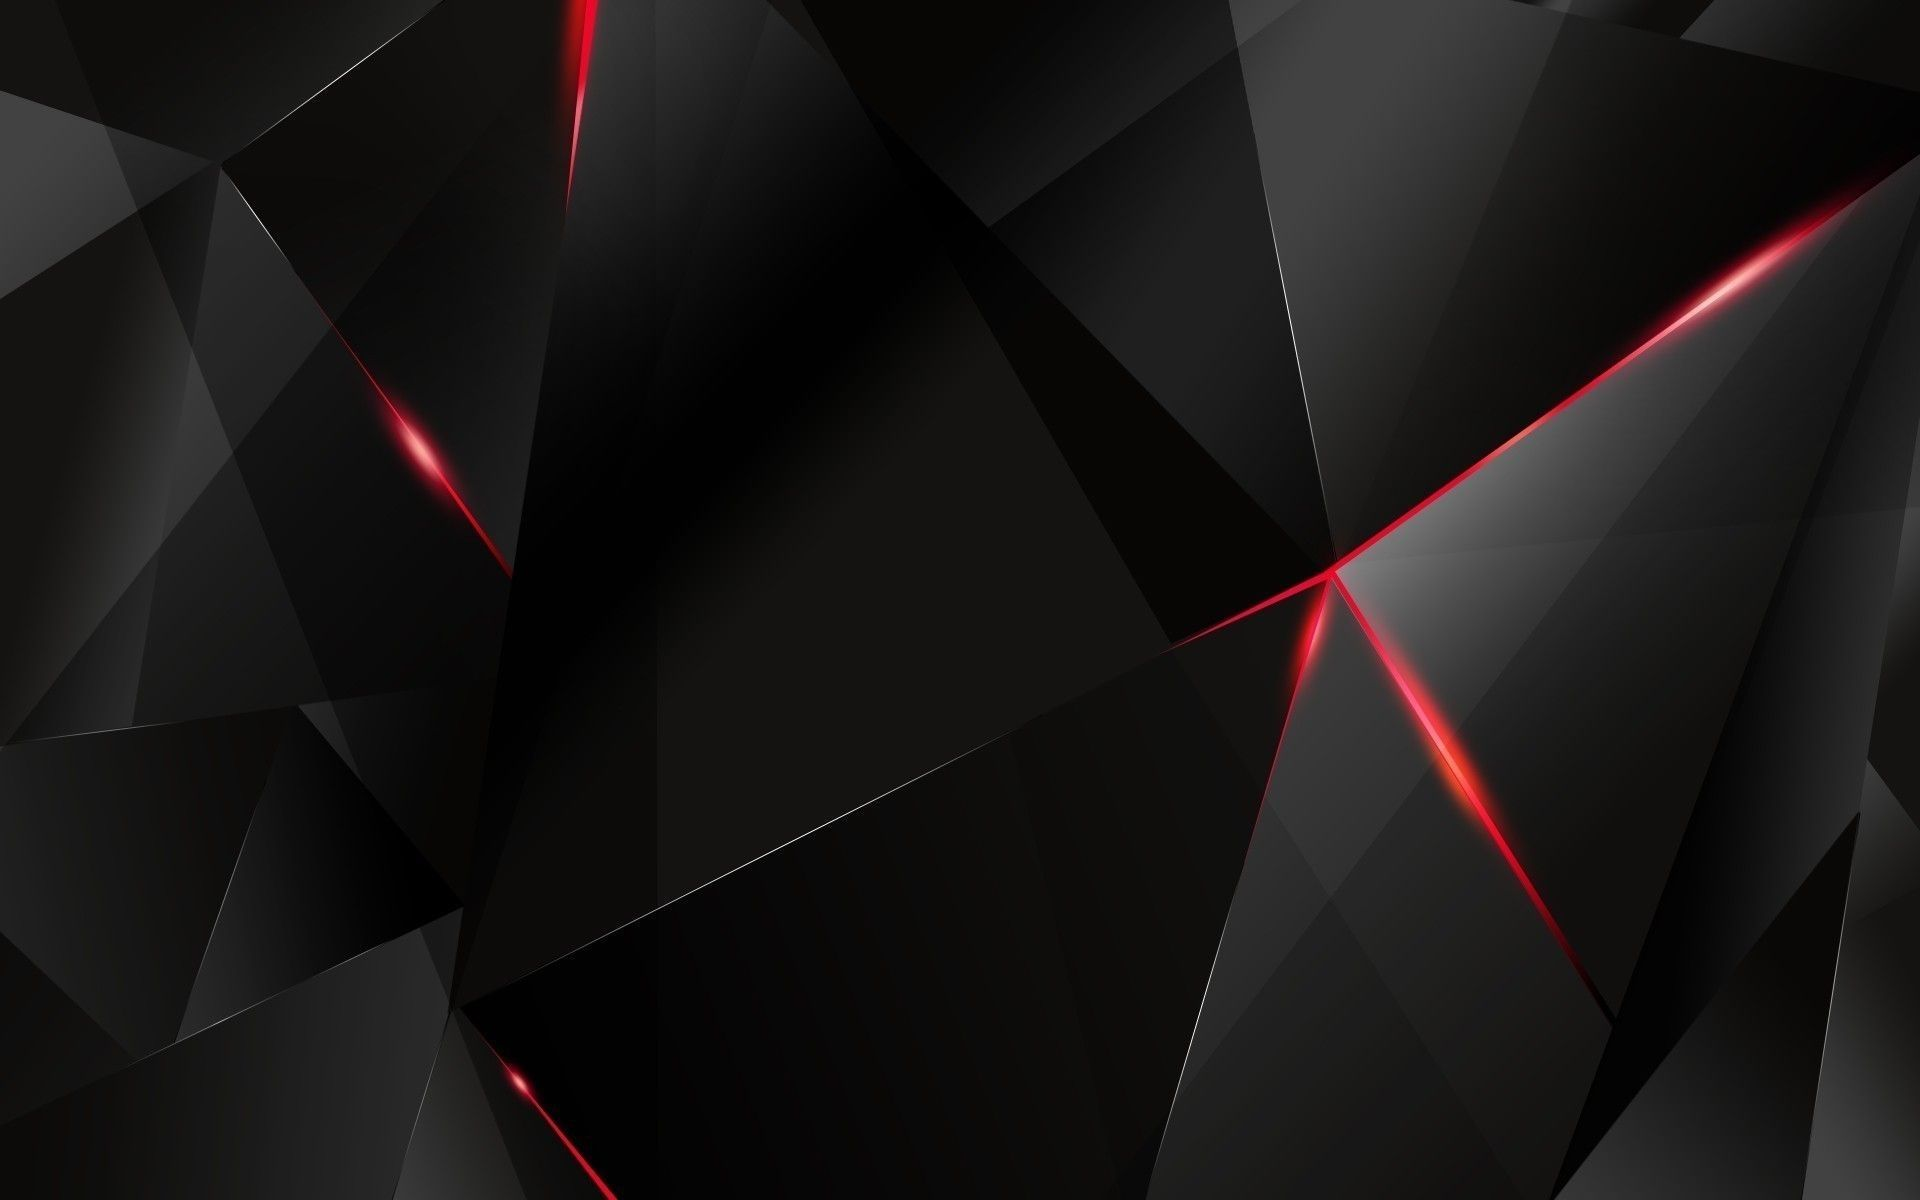 Black And Red Wallpaper Hd 1080p For Mobile